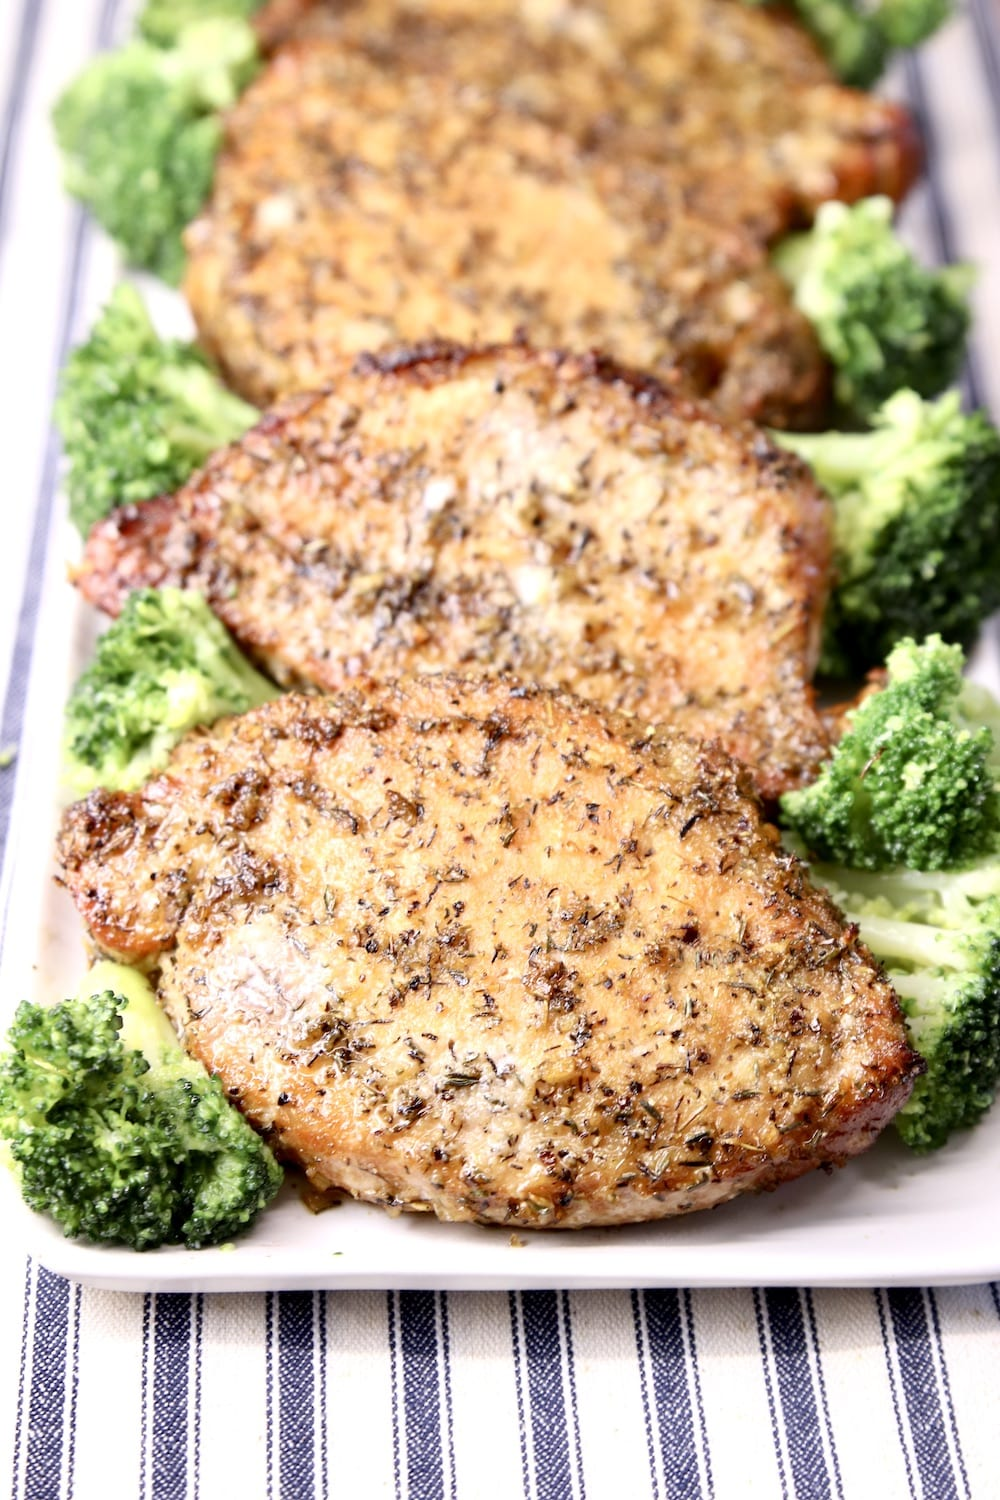 Onion Thyme Grilled Pork chops on a platter with broccoli spears